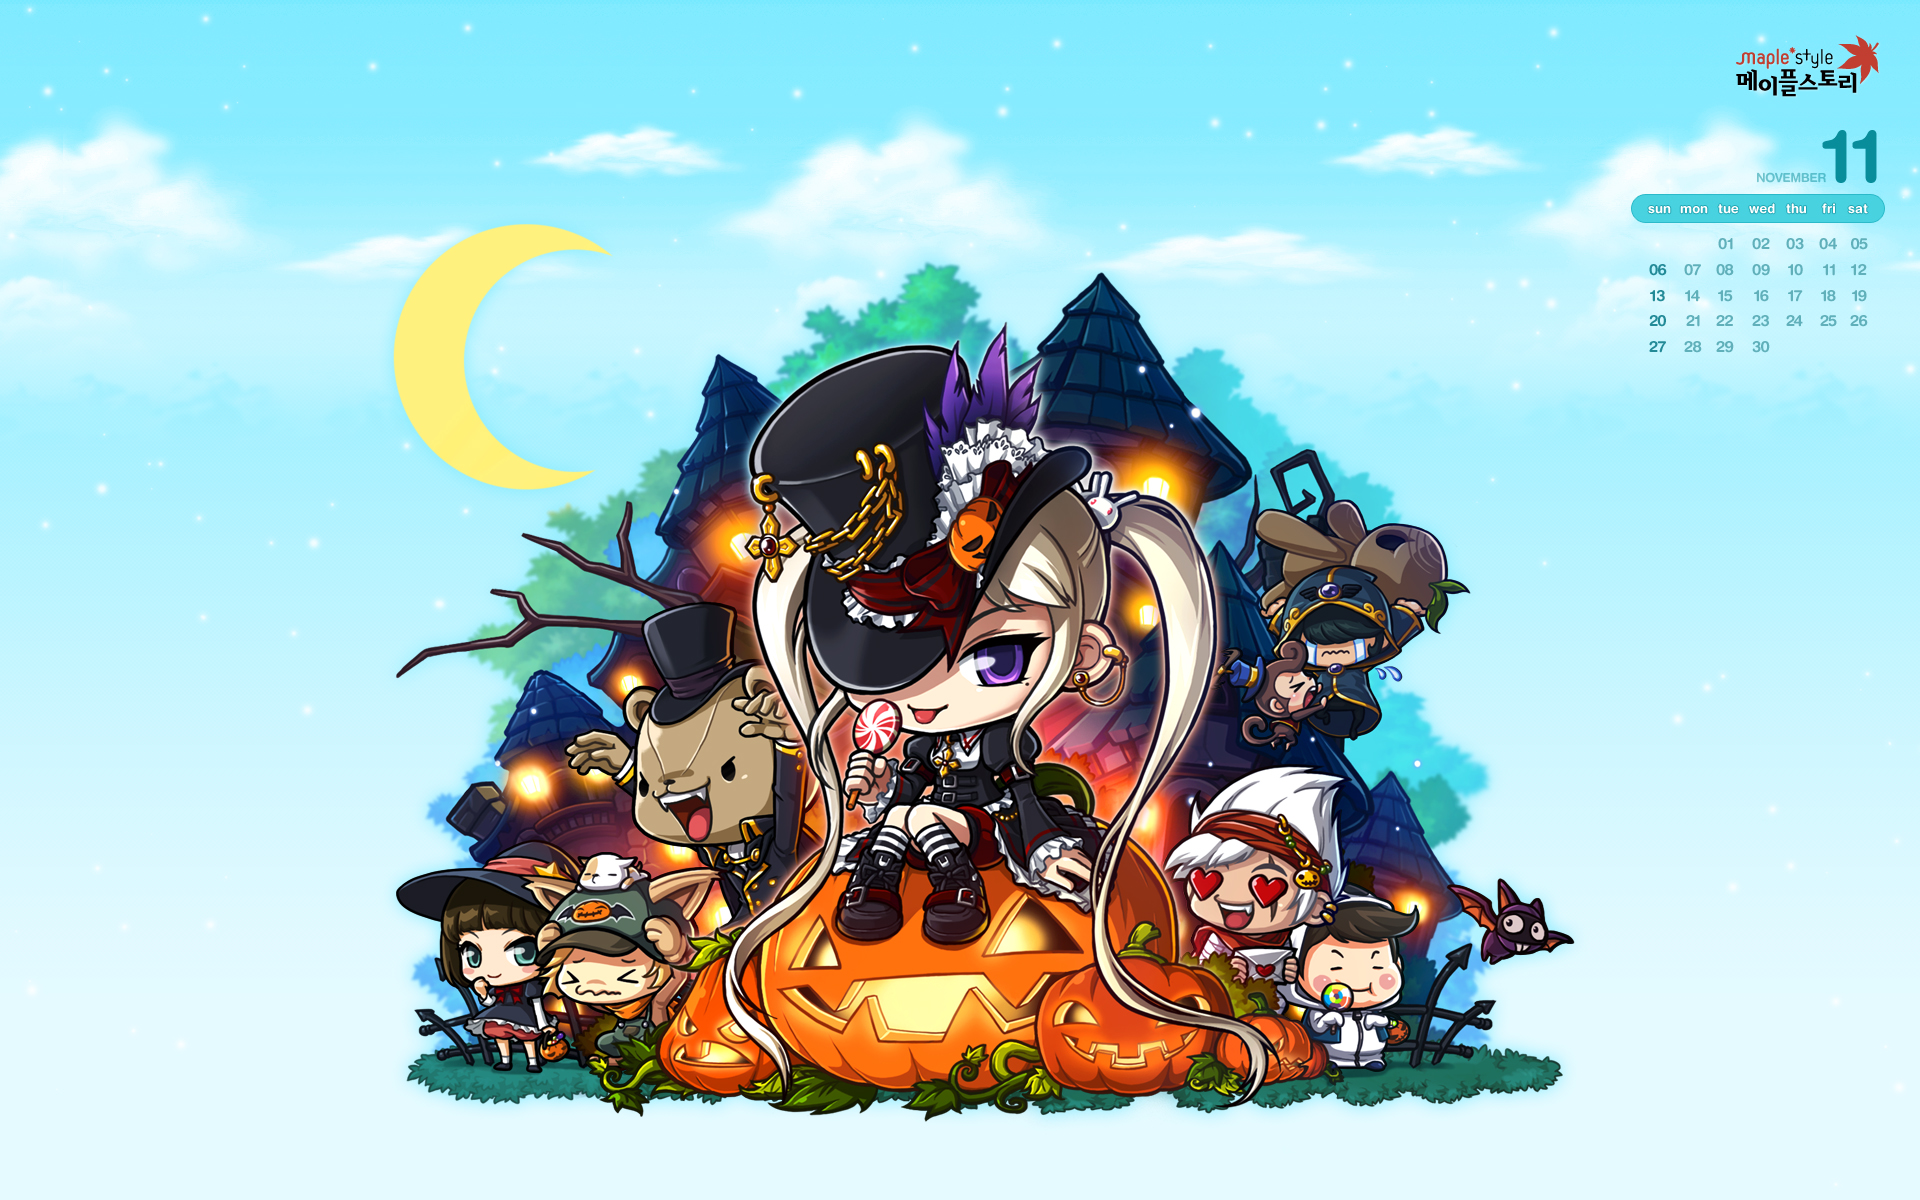 Maplestory Wallpaper  Download a free maplestory